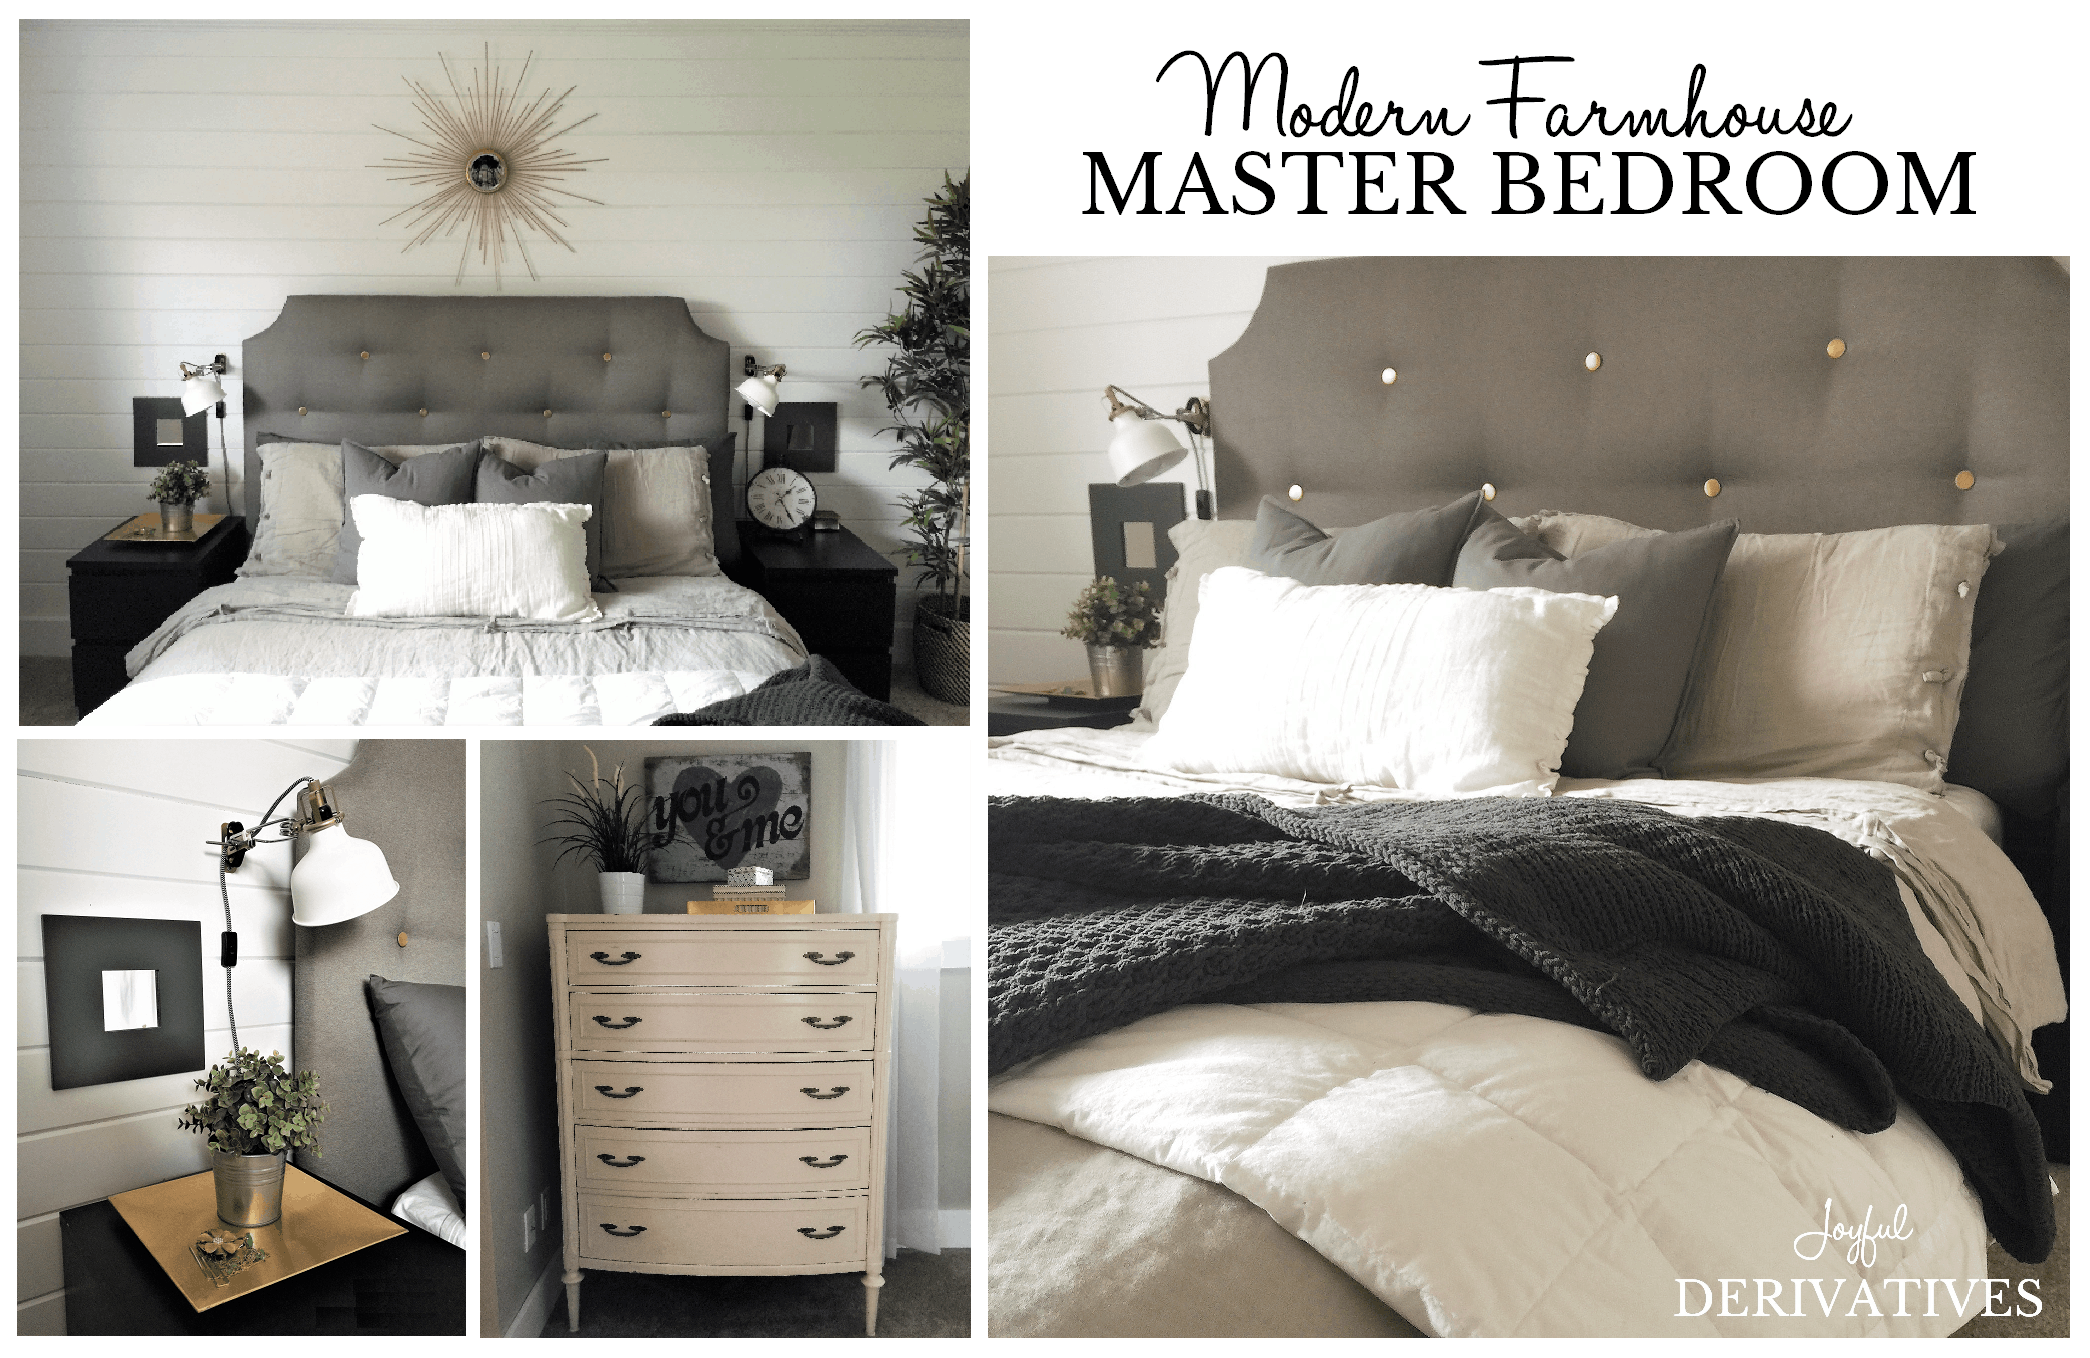 Modern Farmhouse Master Bedroom Tour Joyful Derivatives